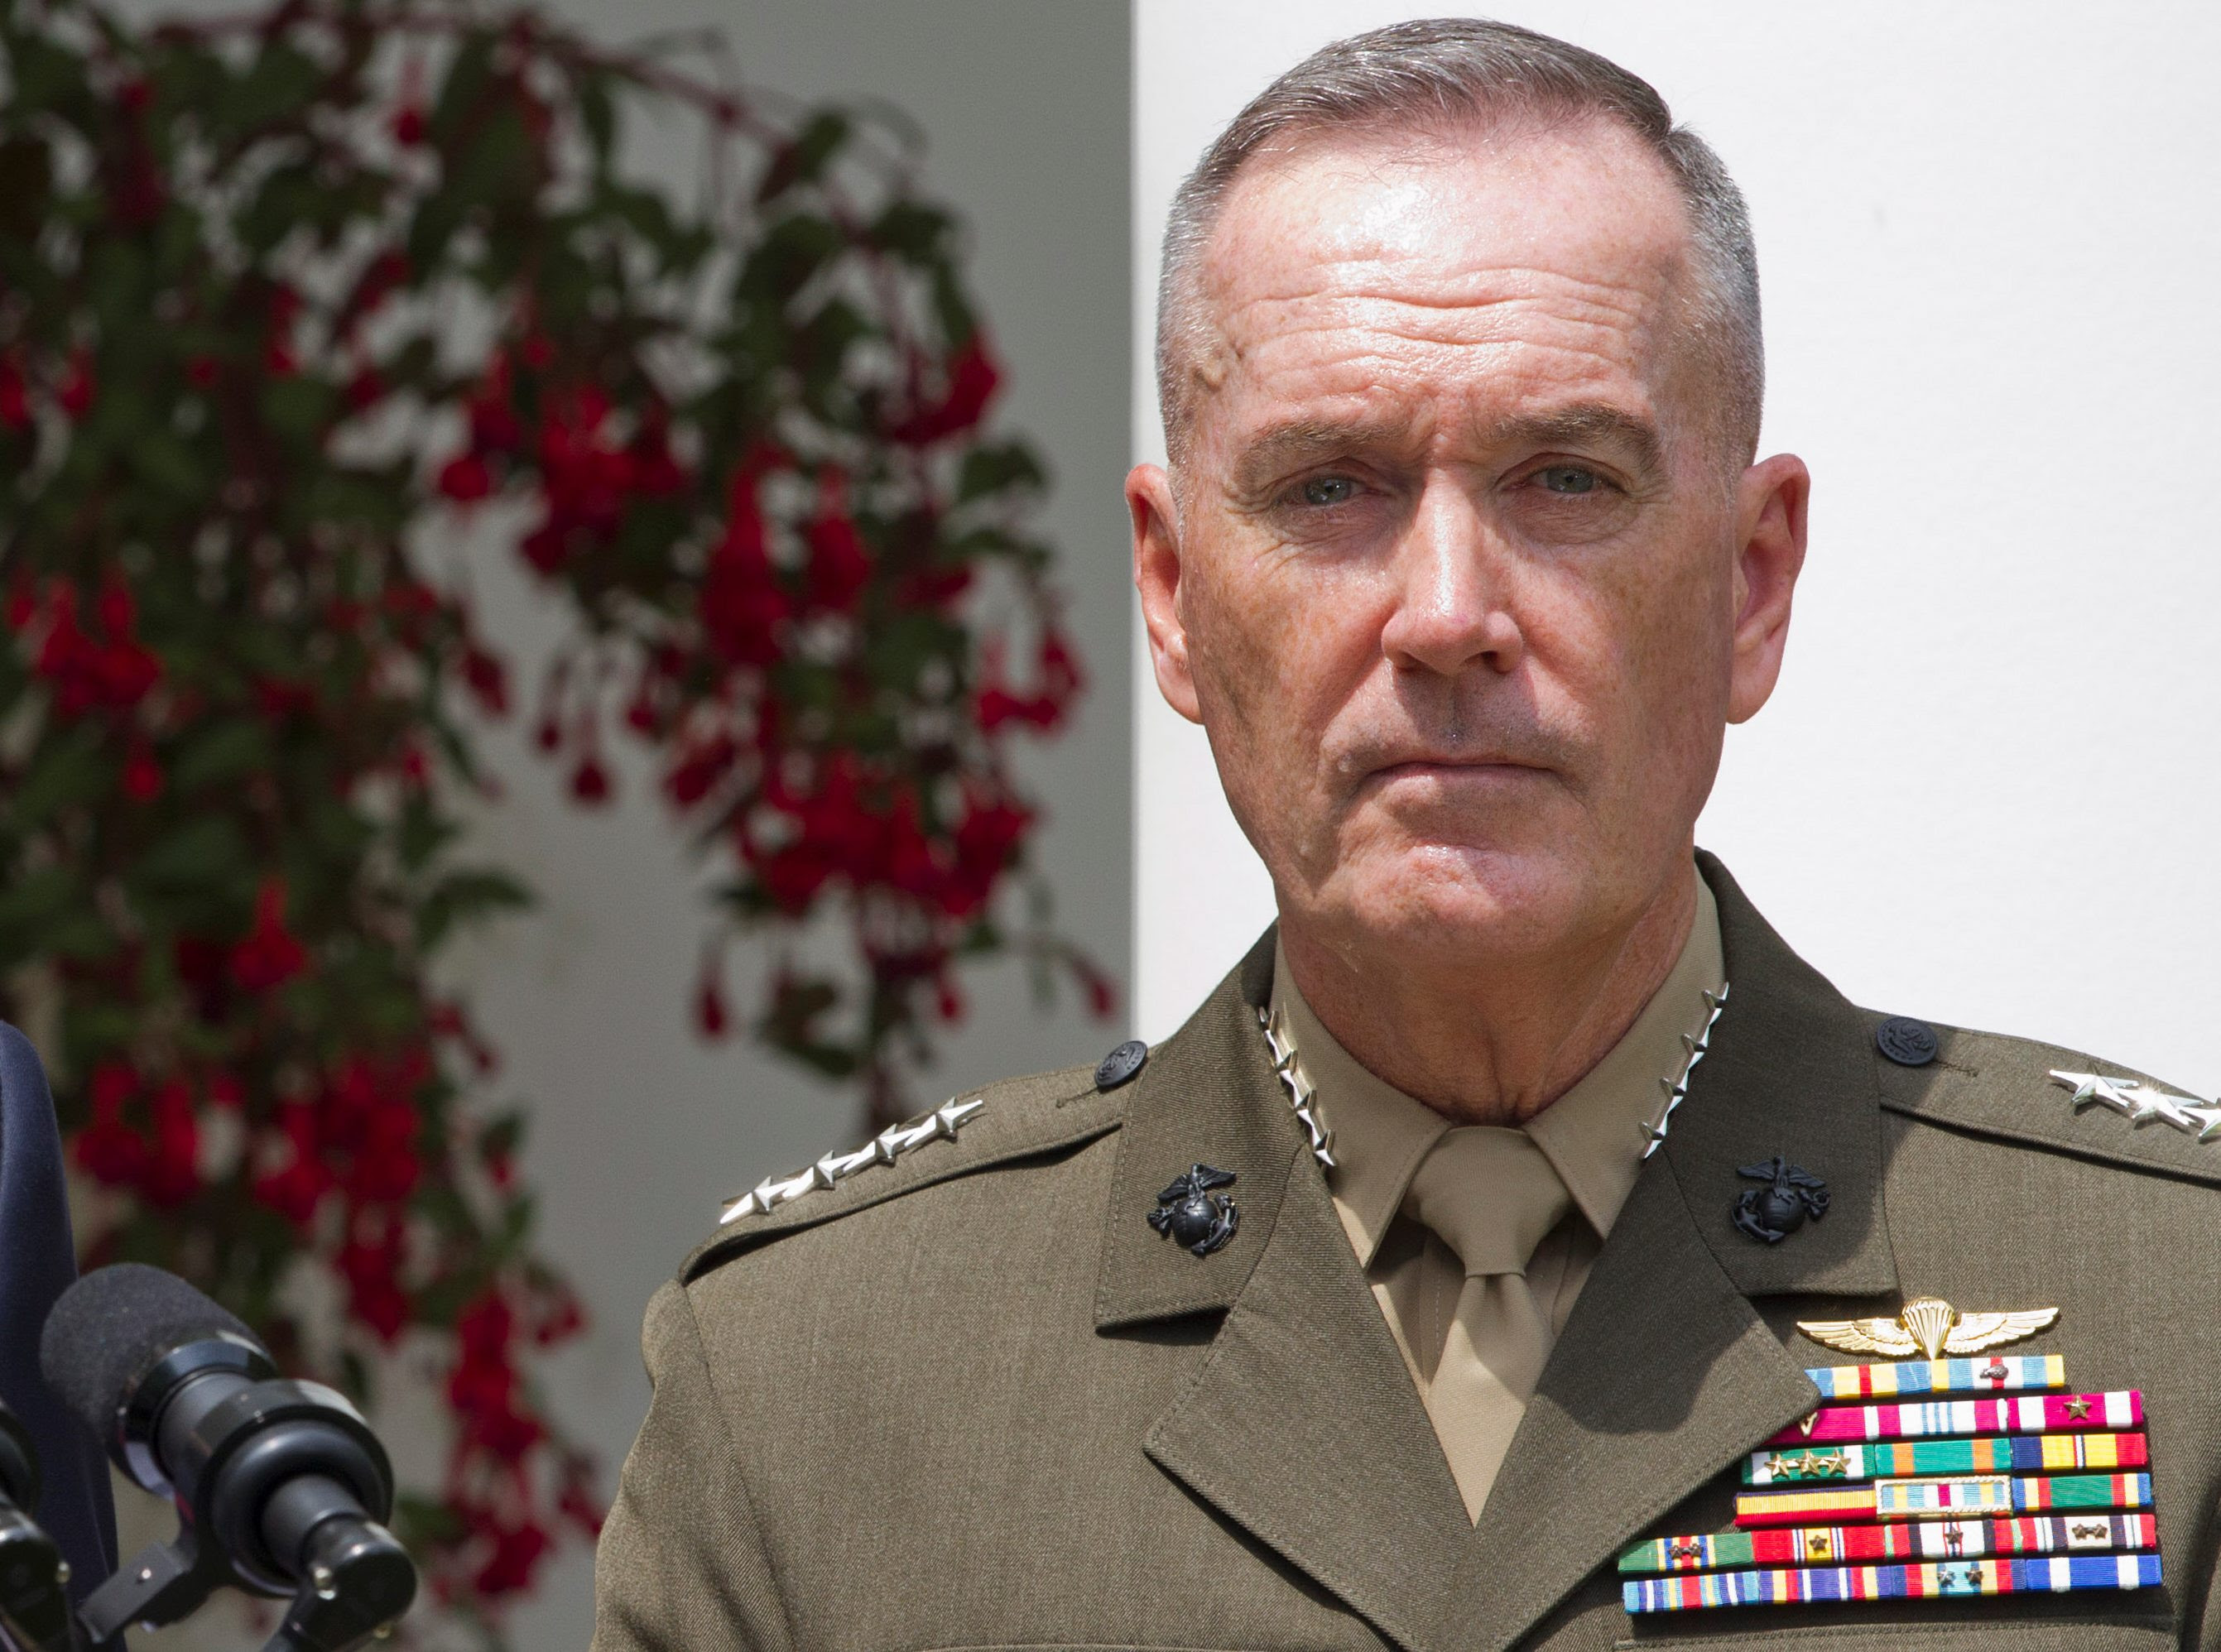 THE POSTER CHILD SAYS IT ALL  5_102015_obama-joint-chiefs-chair-248201